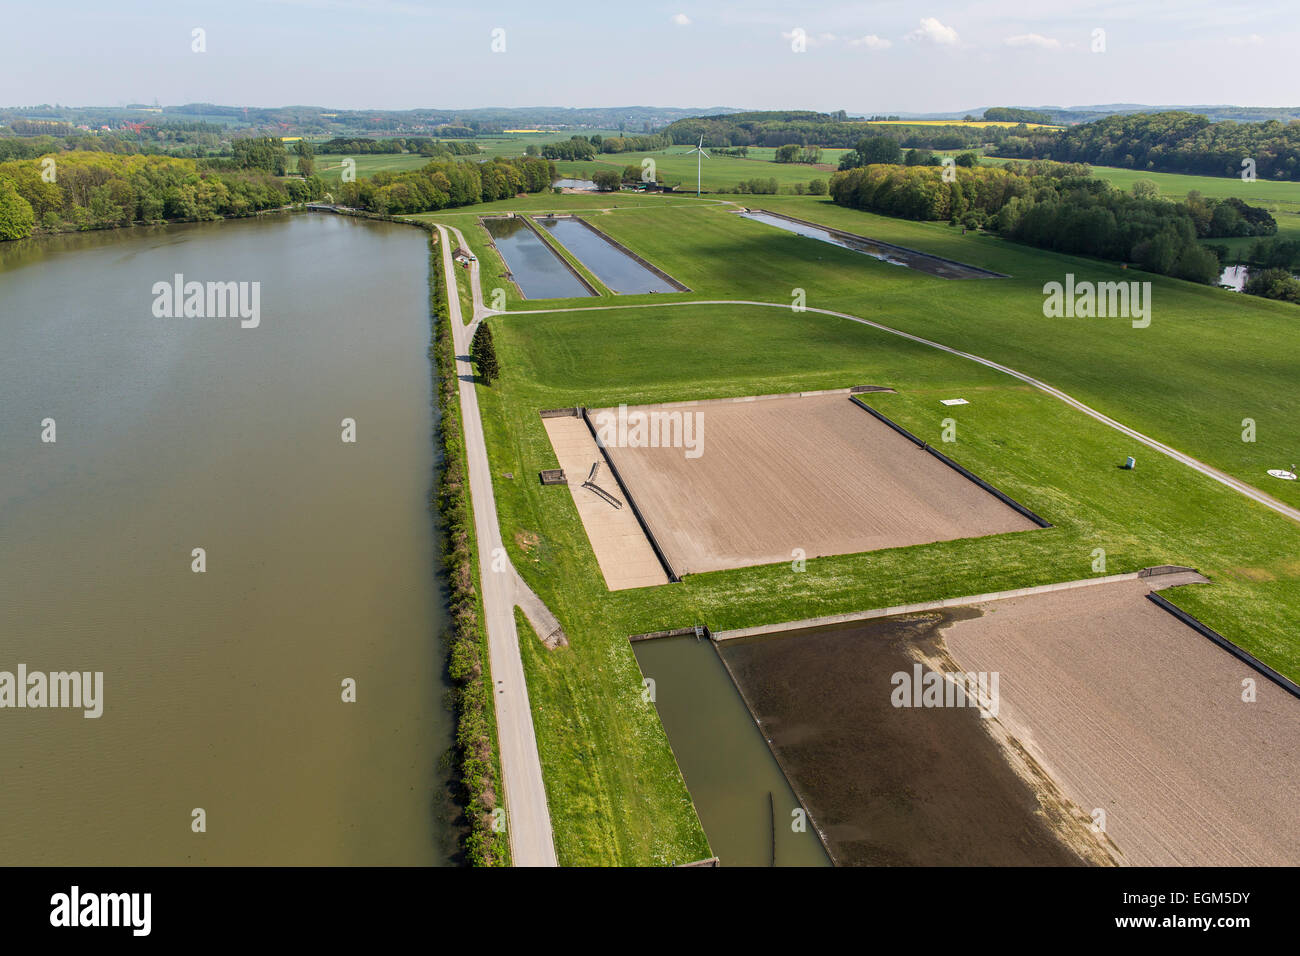 Waterworks, filtering water from river Ruhr, to prepare drinking water for city's  water supply, - Stock Image